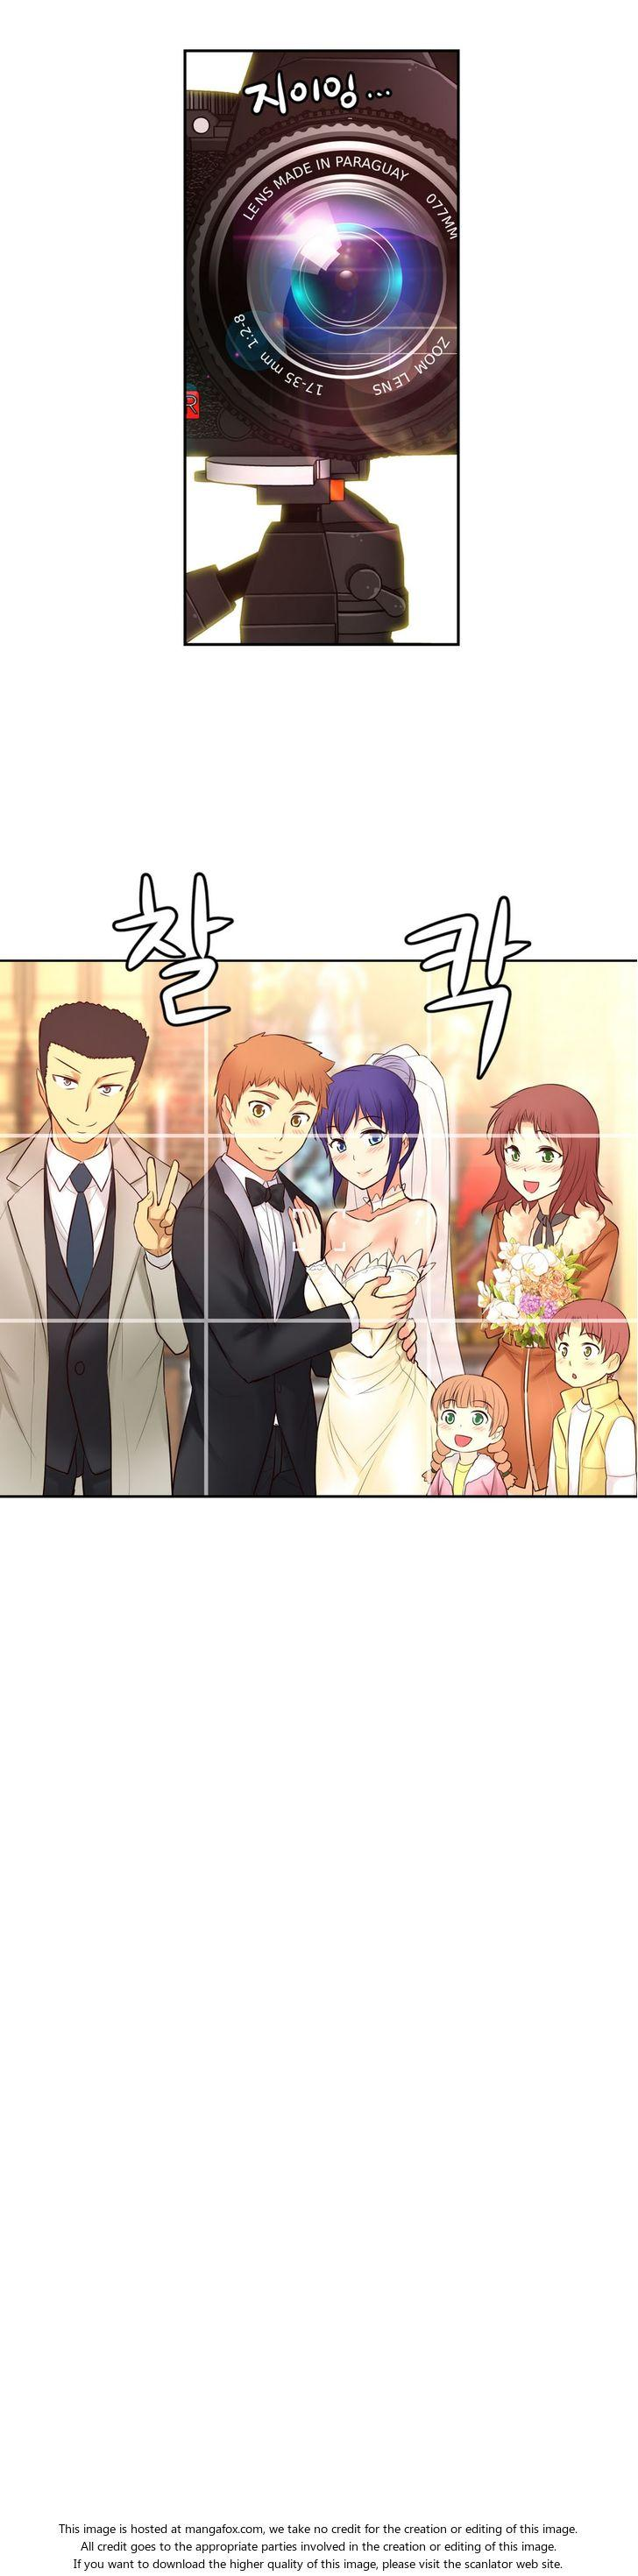 [Donggul Gom] She is Young (English) Part 1/2 1954